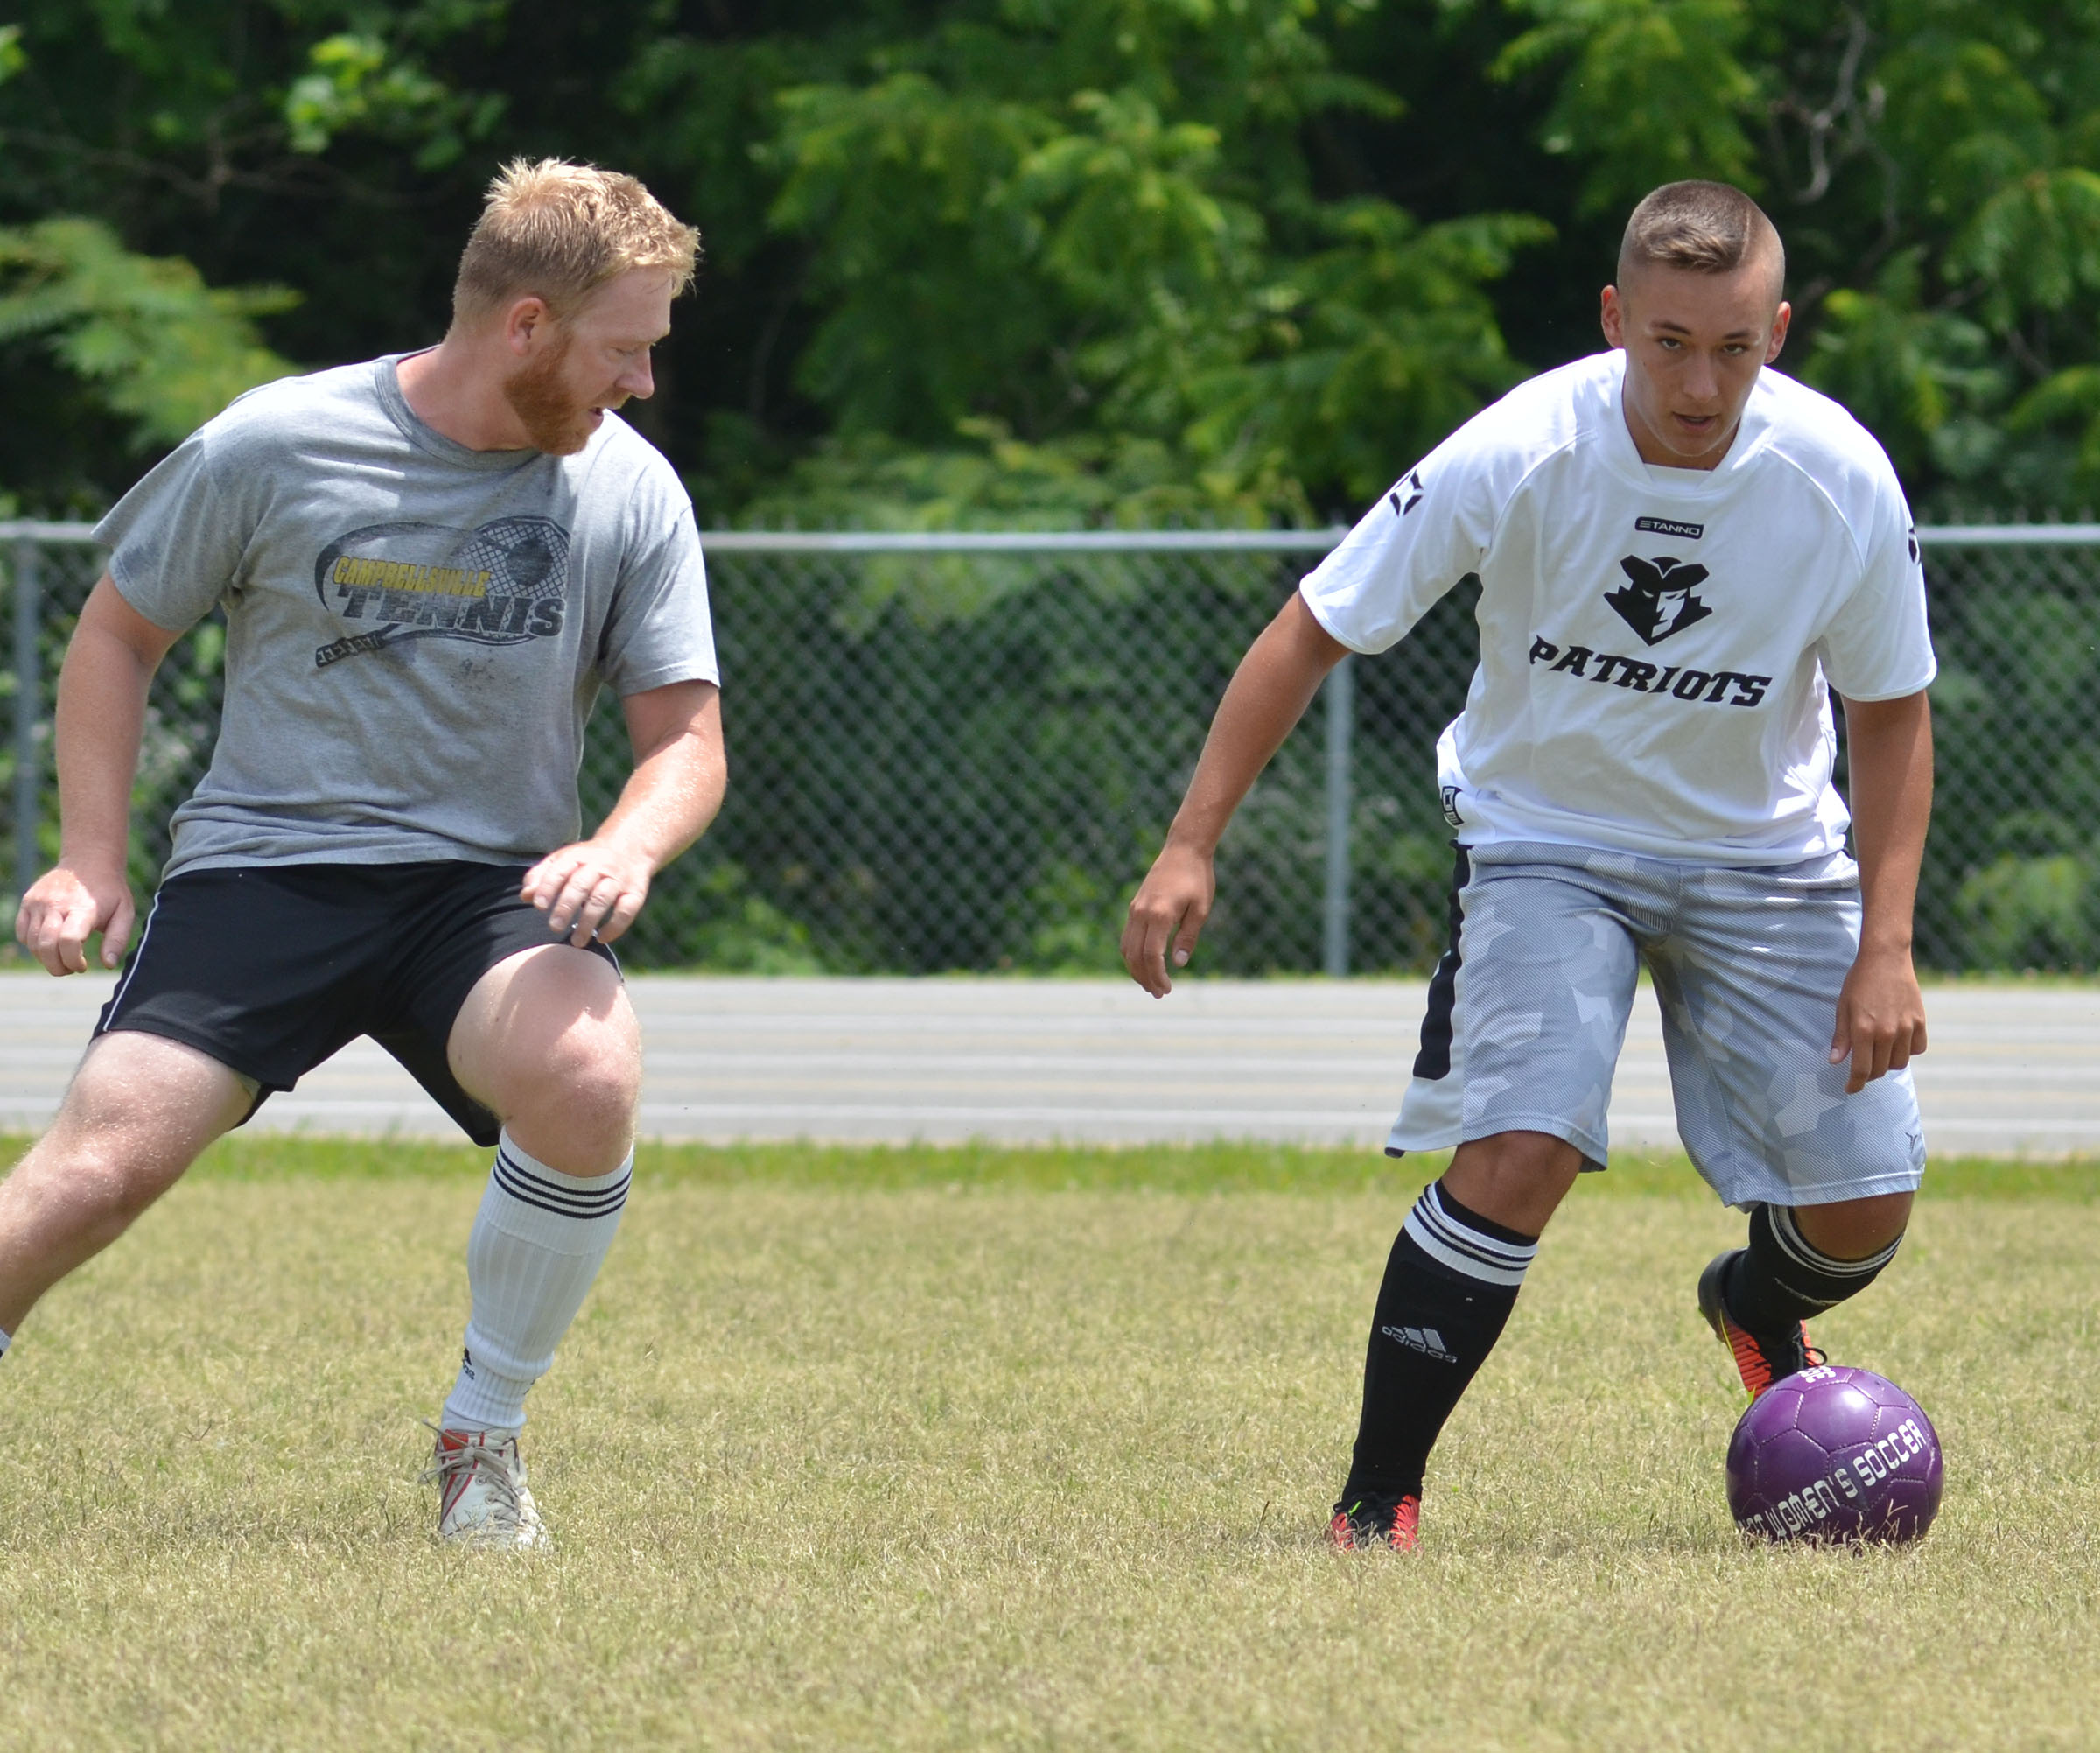 CHS soccer alumni player Luke Lawless battles senior Cody Davis.